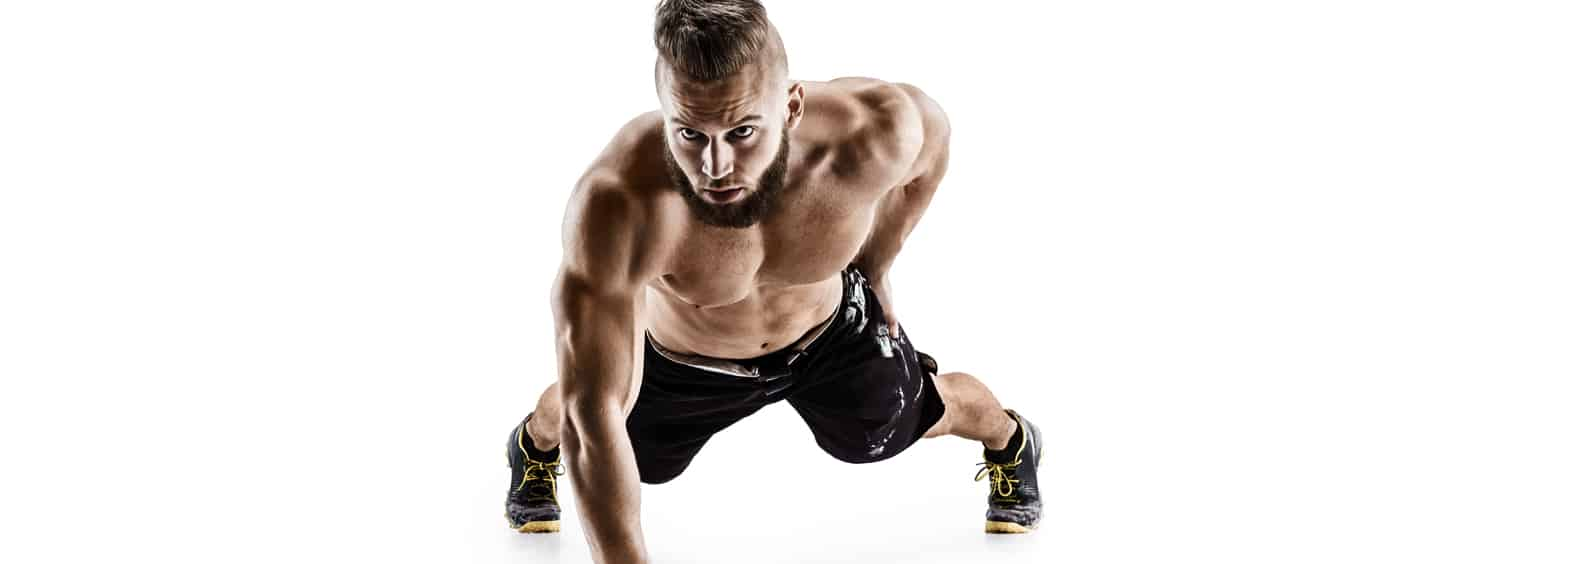 Bench Press or Push Ups – What is the best measure of strength